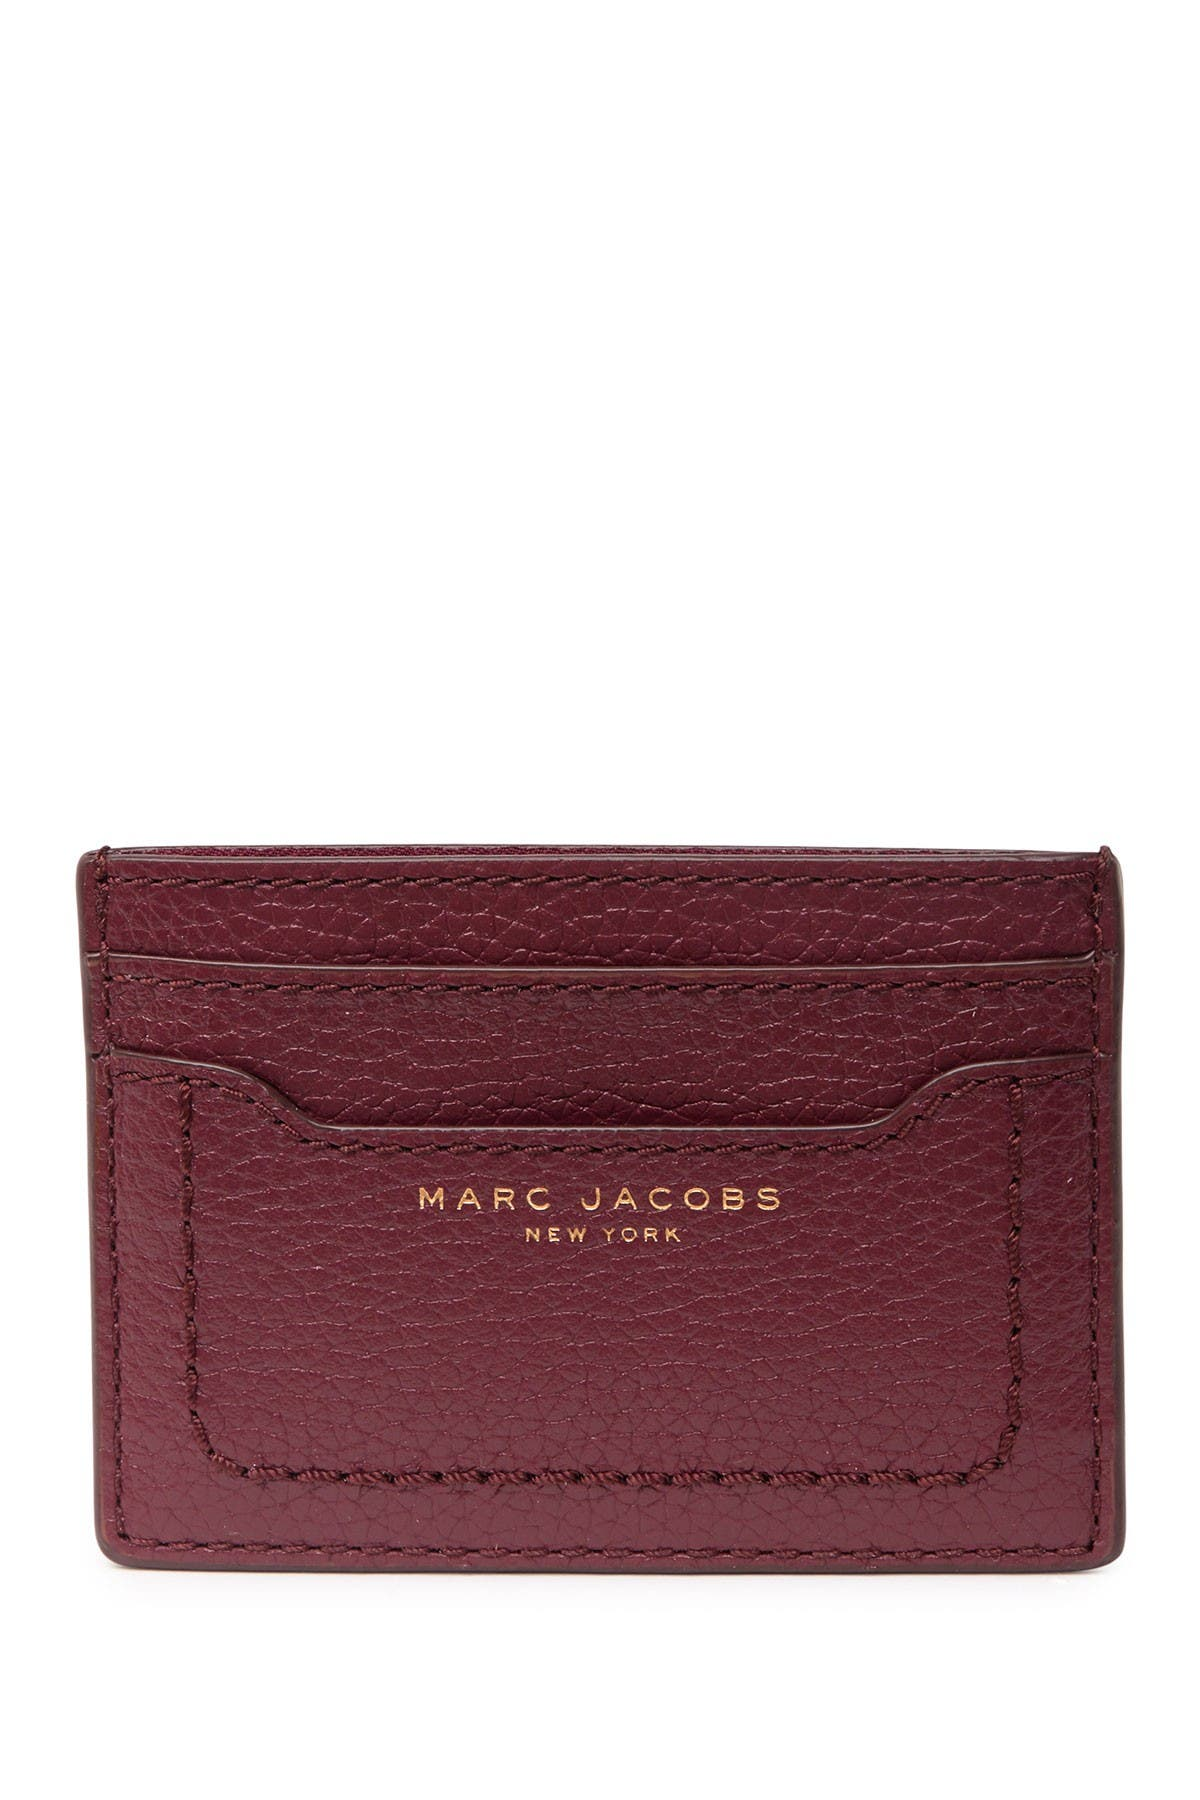 Image of Marc Jacobs Empire City Leather Card Case